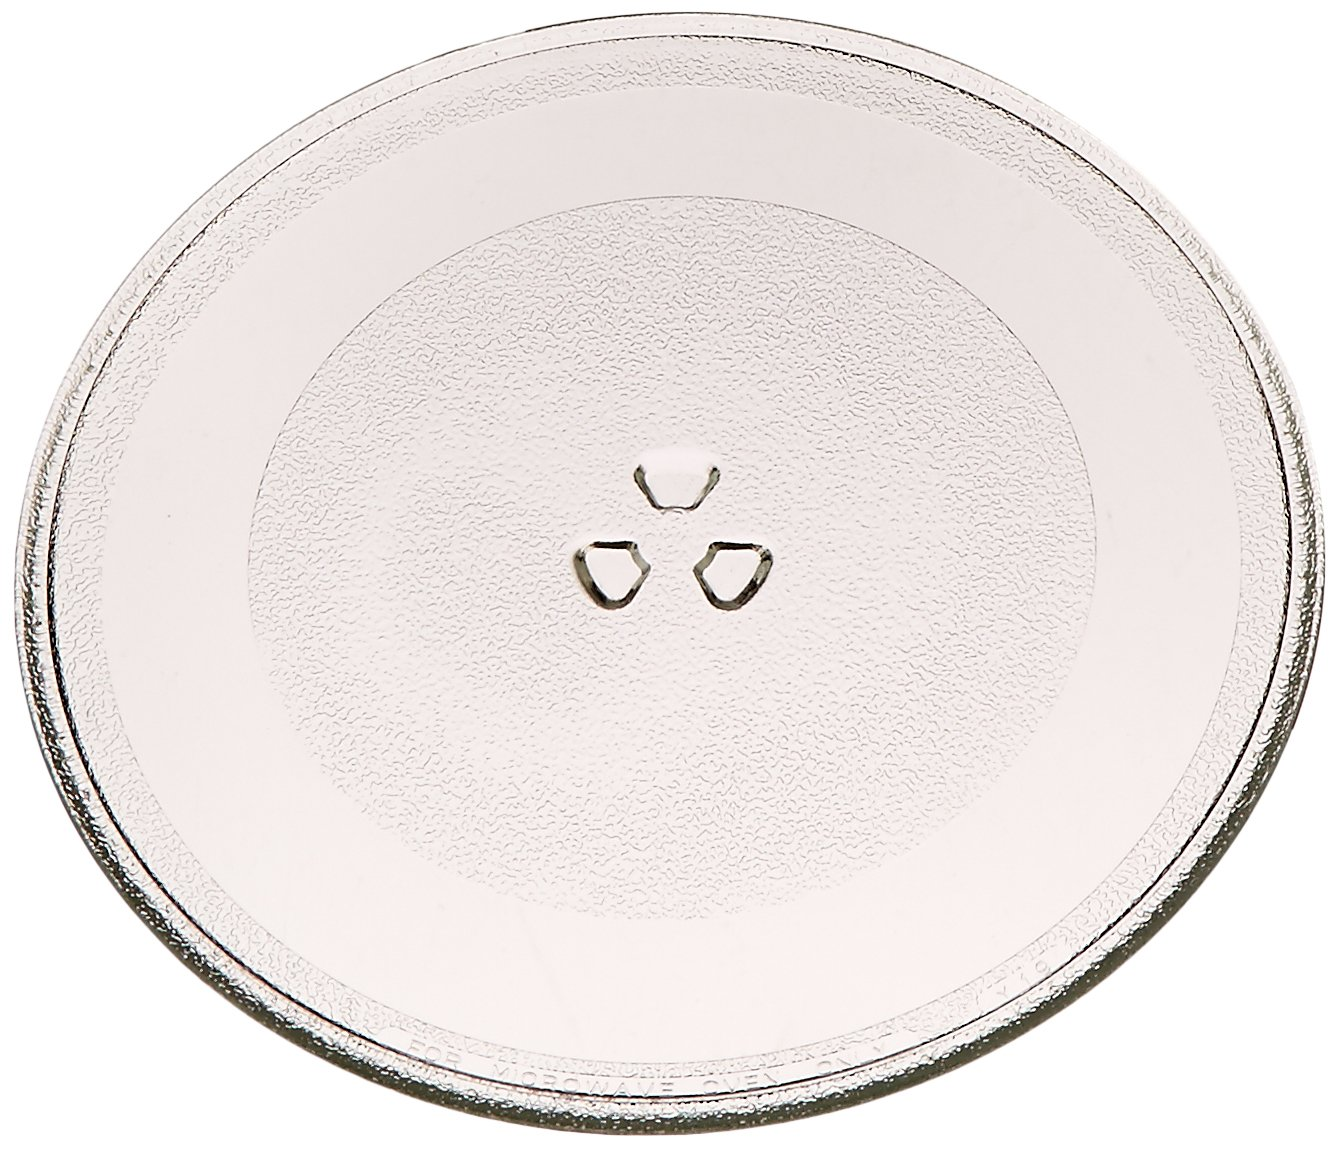 Sears / Kenmore Microwave Glass Turntable Tray / Plate 12 3/4''